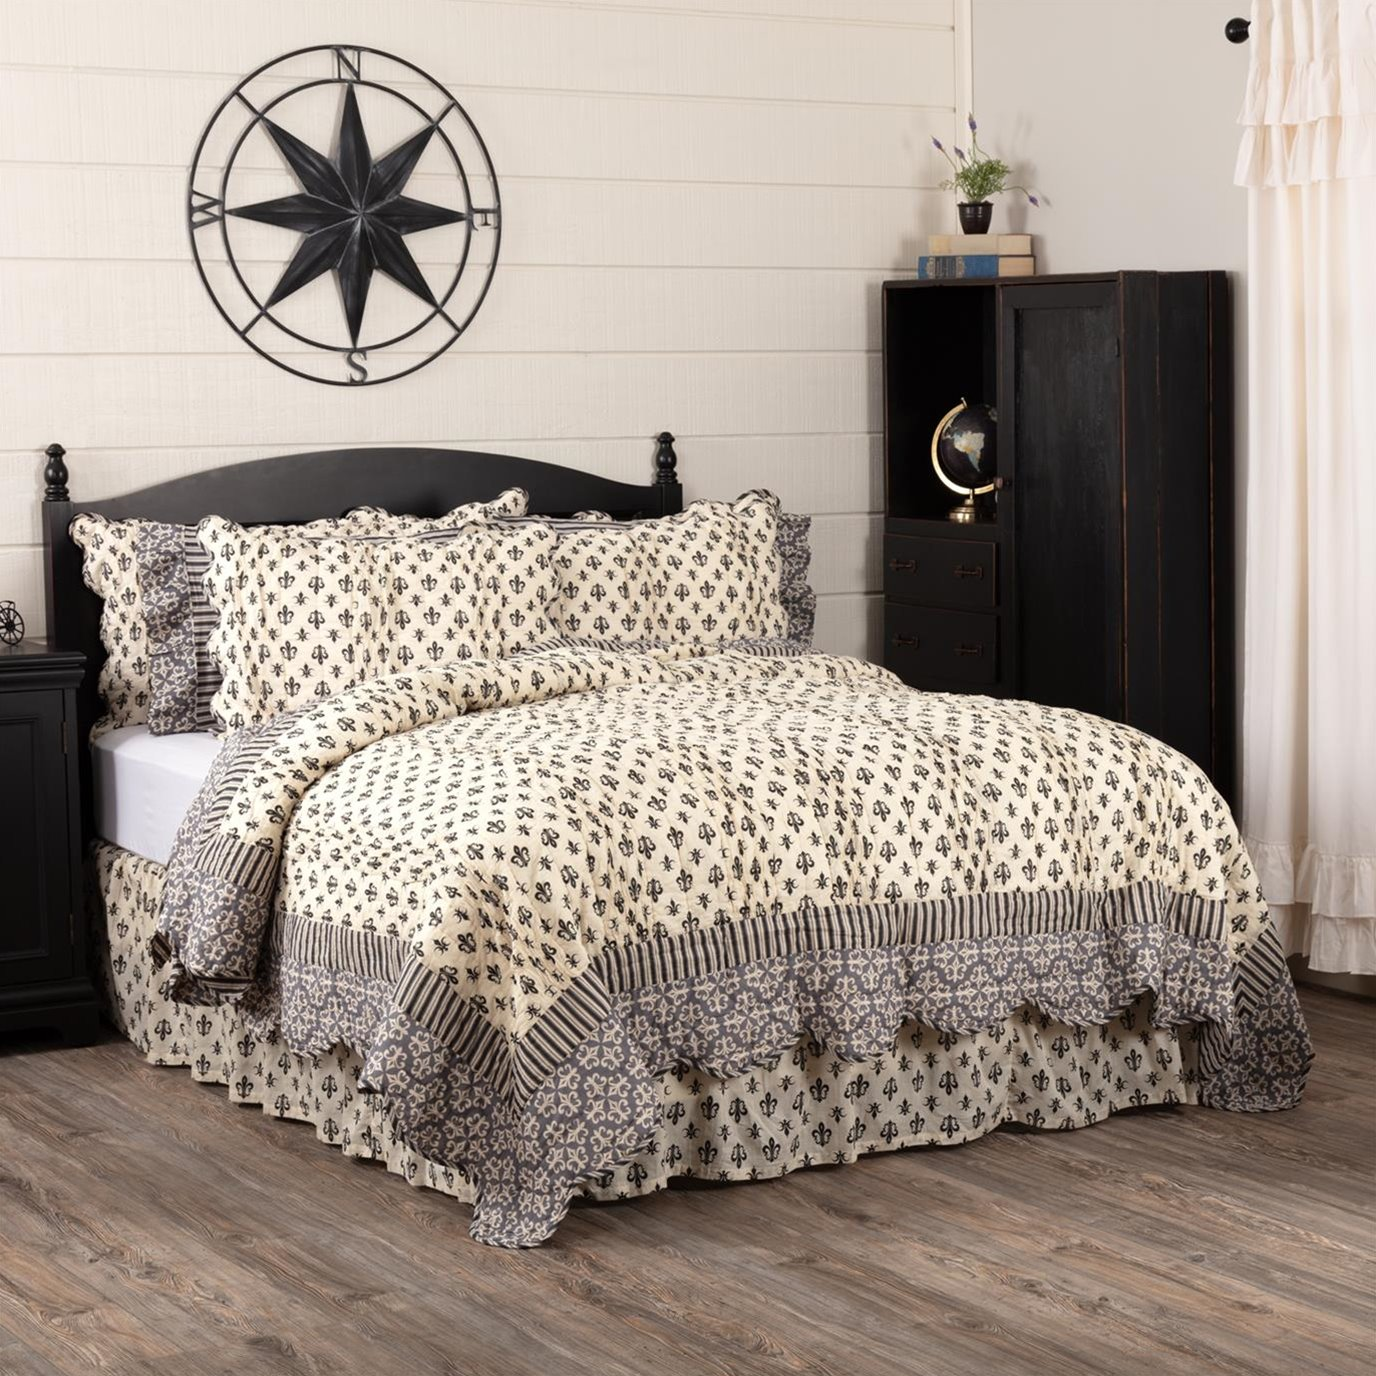 Elysee Luxury King Quilt 120Wx105L